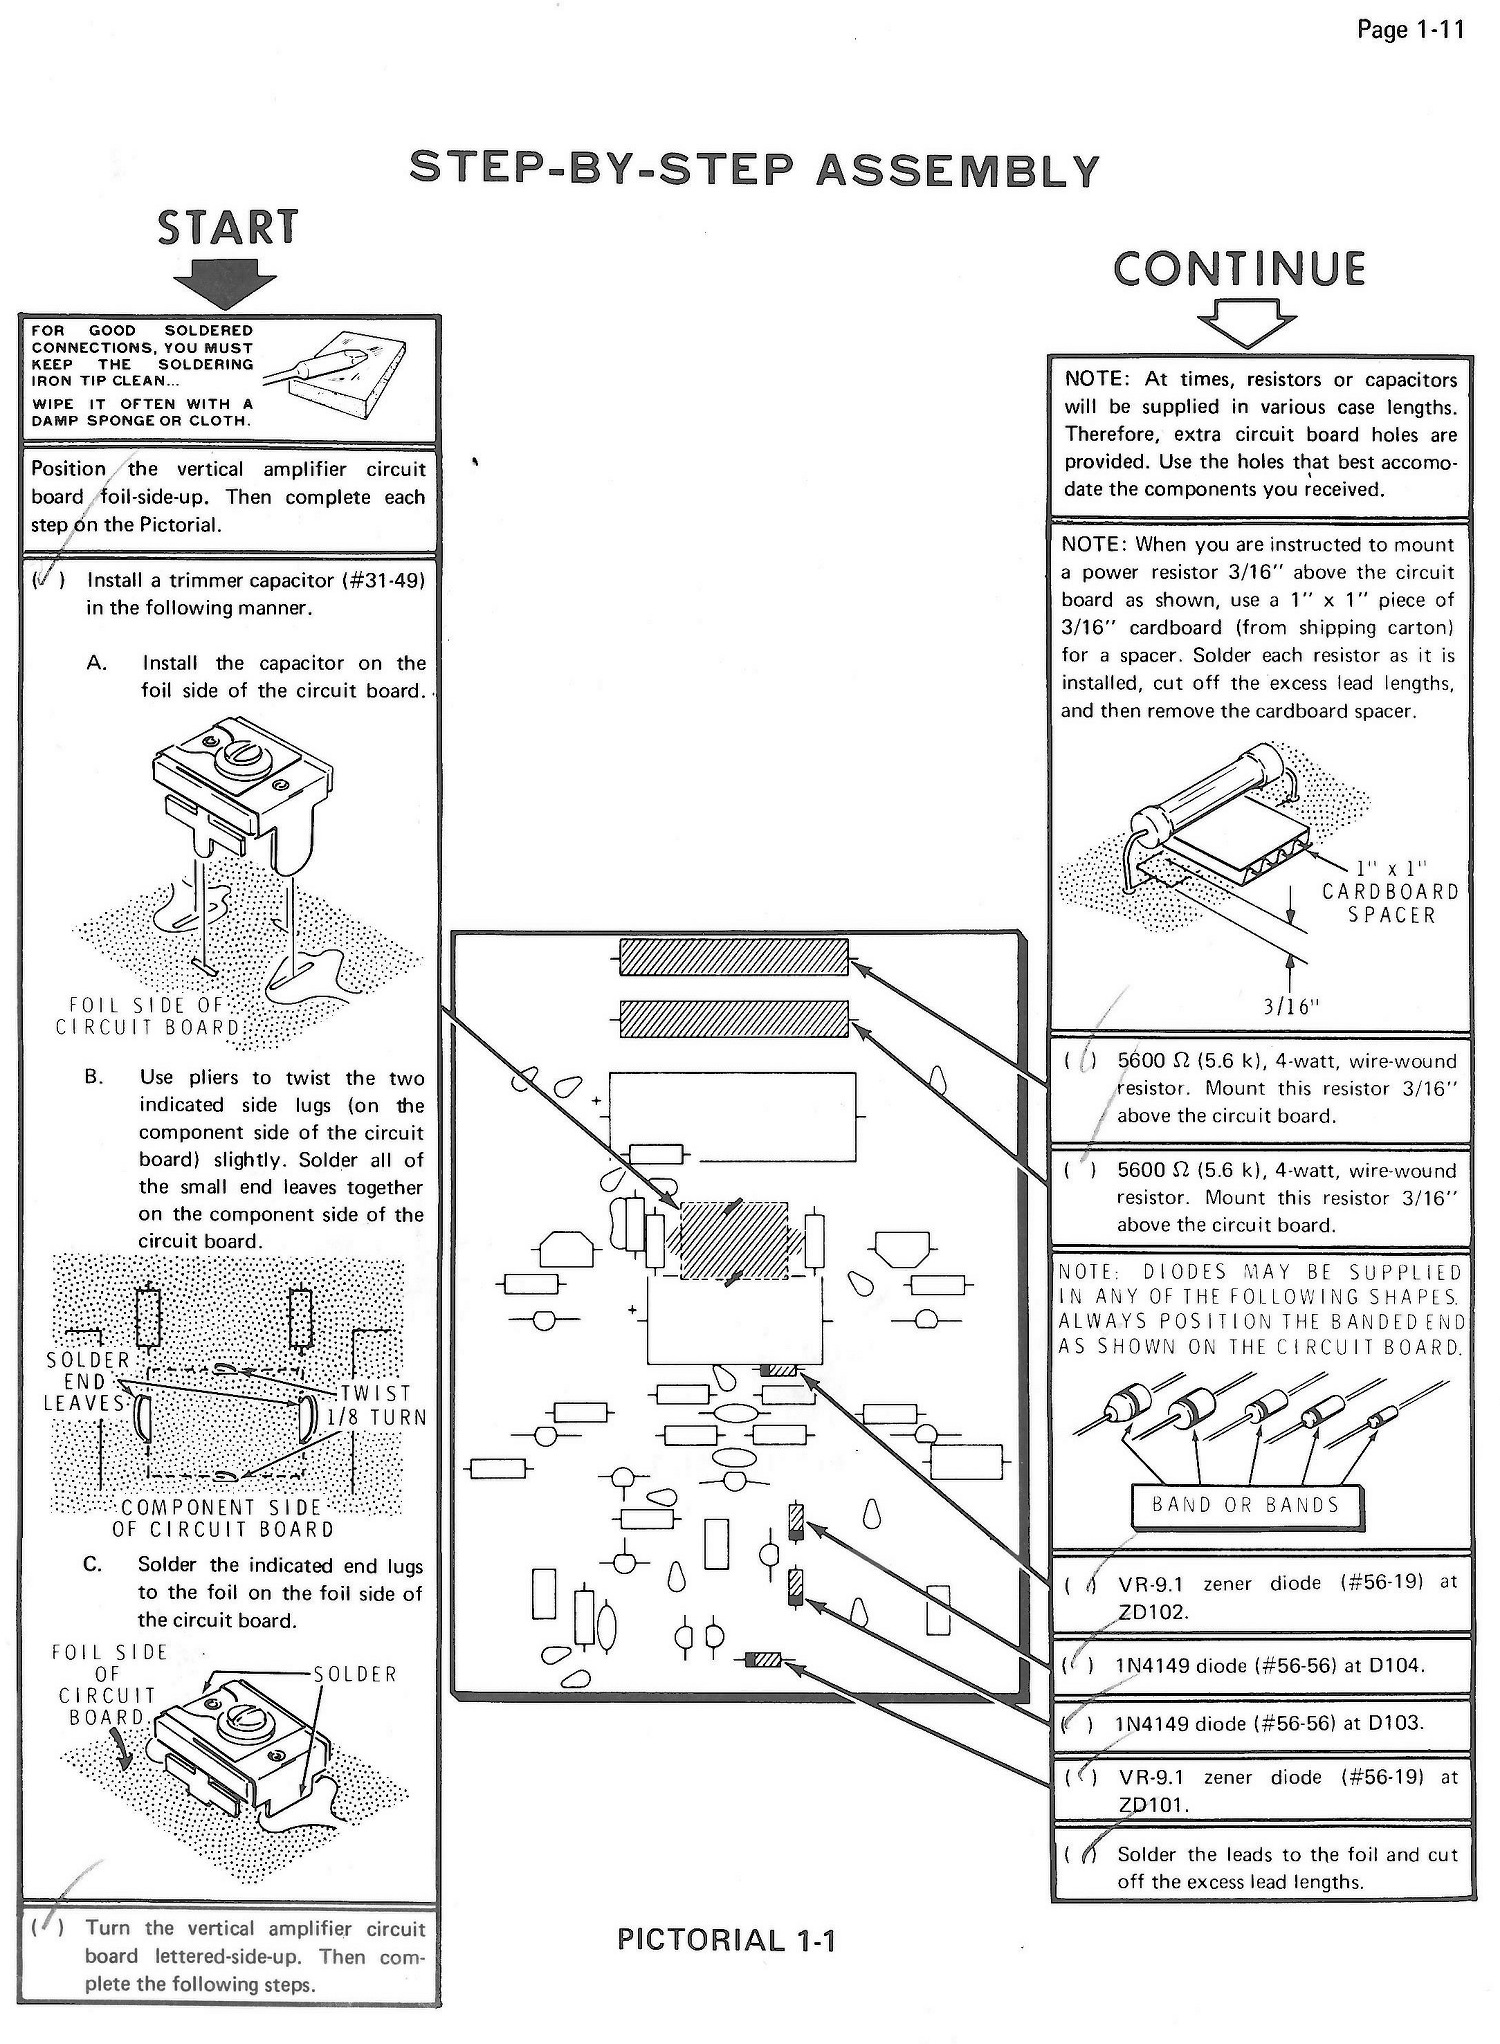 HONDA VFR NC30 FUSE BOX - Auto Electrical Wiring Diagram on